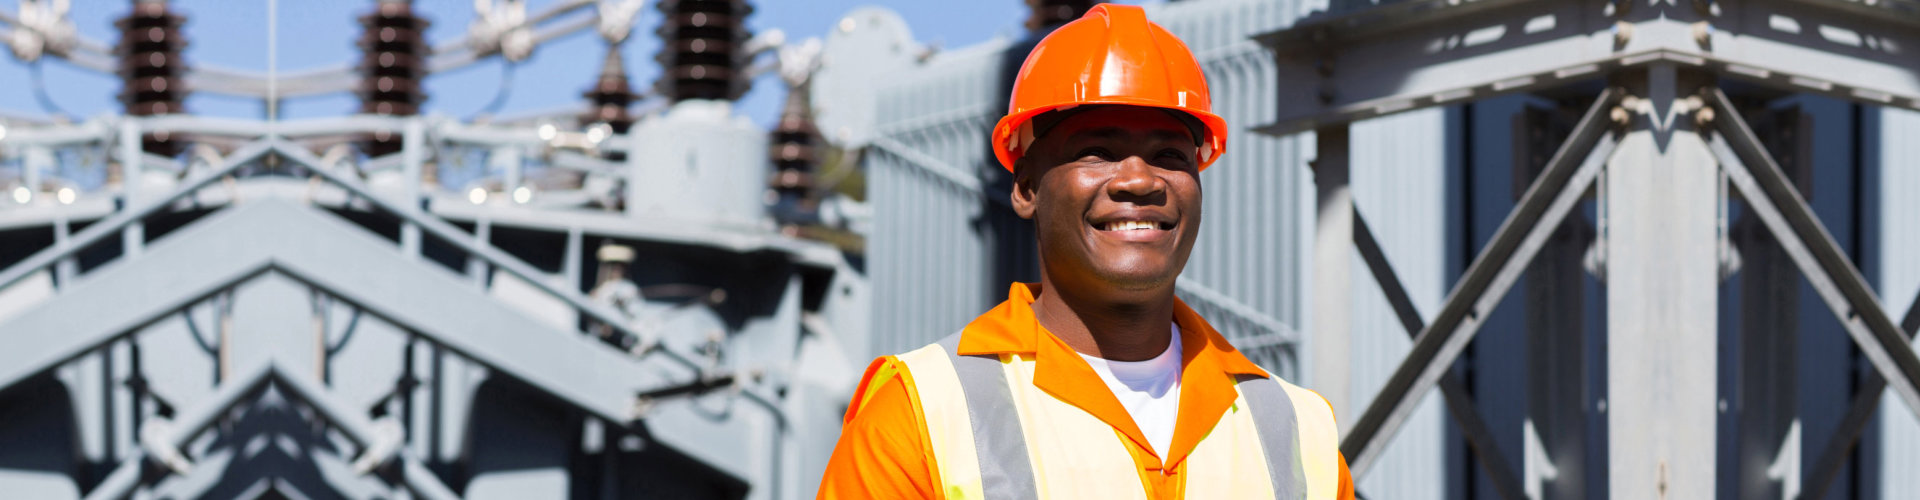 electrical engineer working in substation